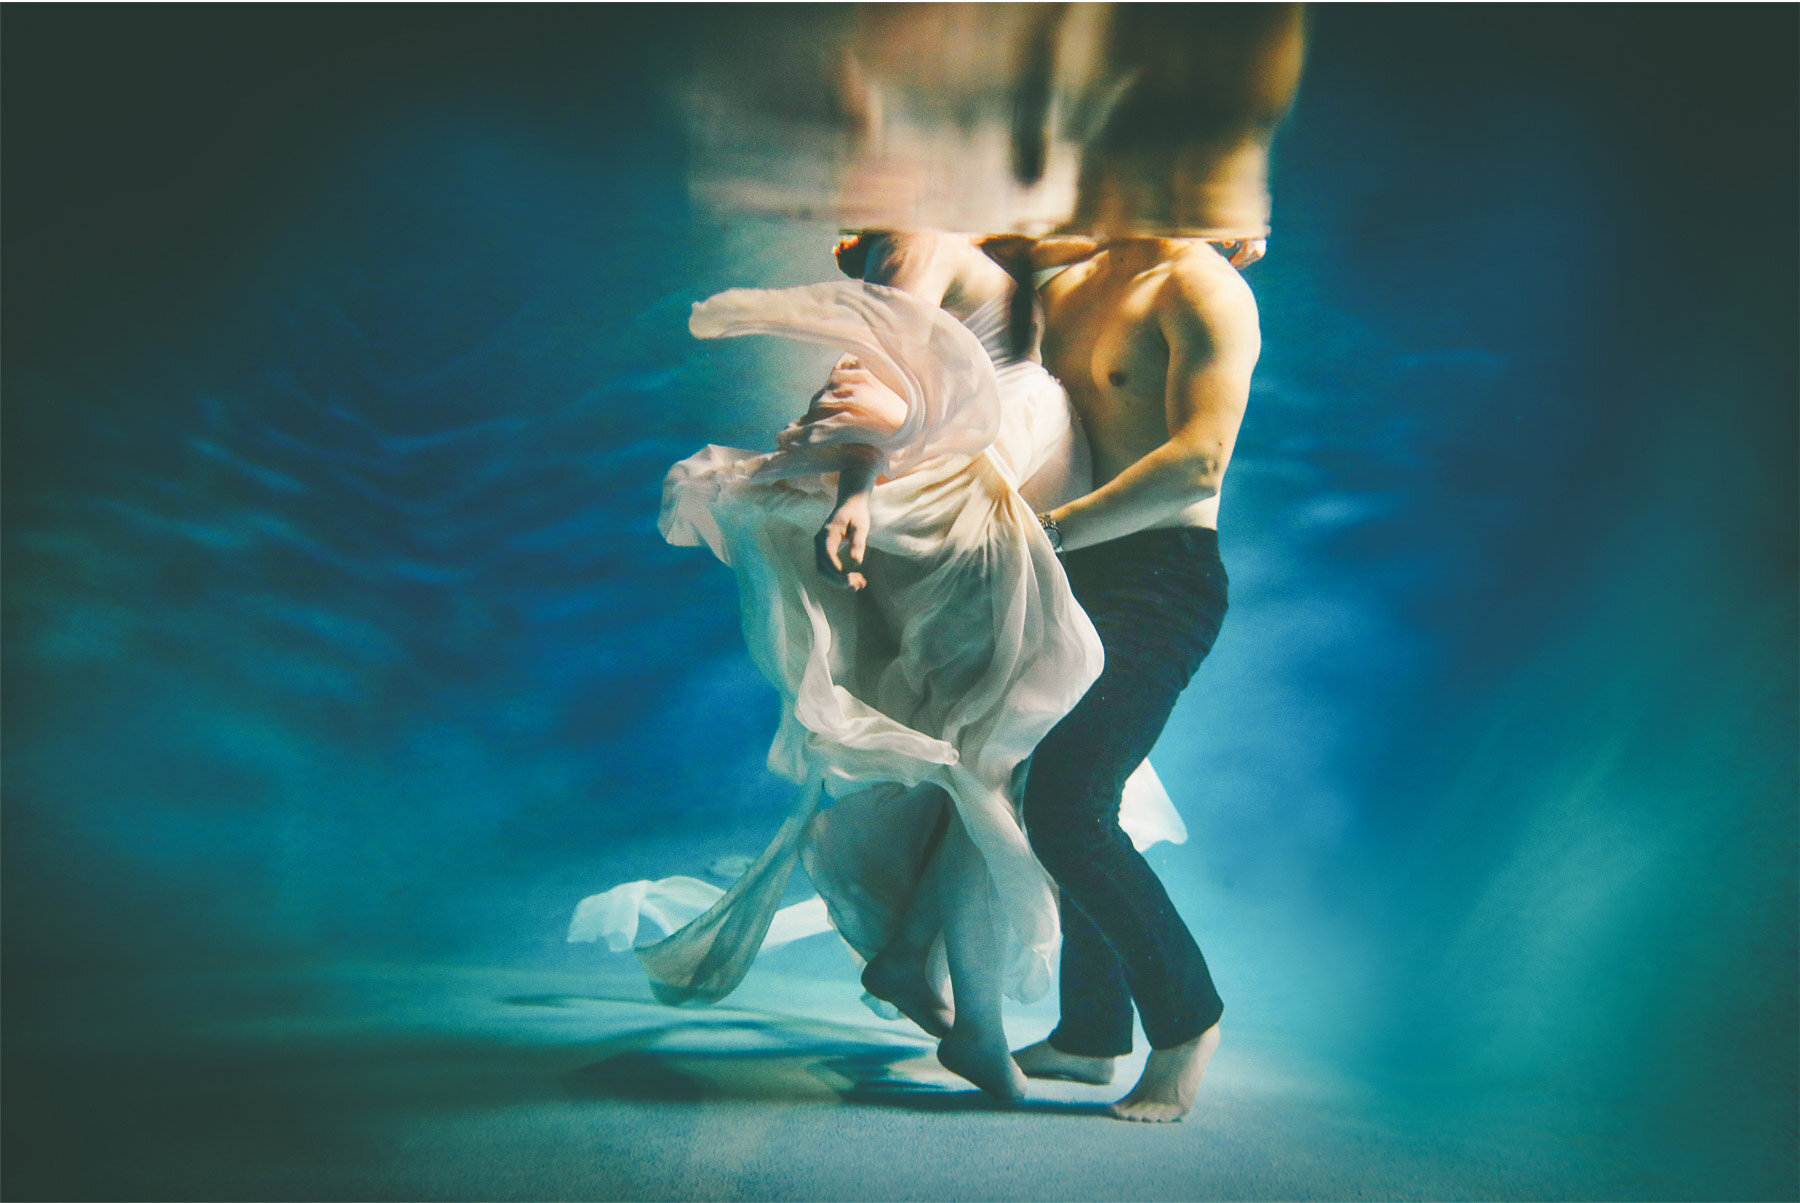 08-Vick-Studios-Maternity-Baby-Bump-Photo-Session-Mother-Father-Pool-Underwater-Dress-Night-Carrie-and-Brian.jpg